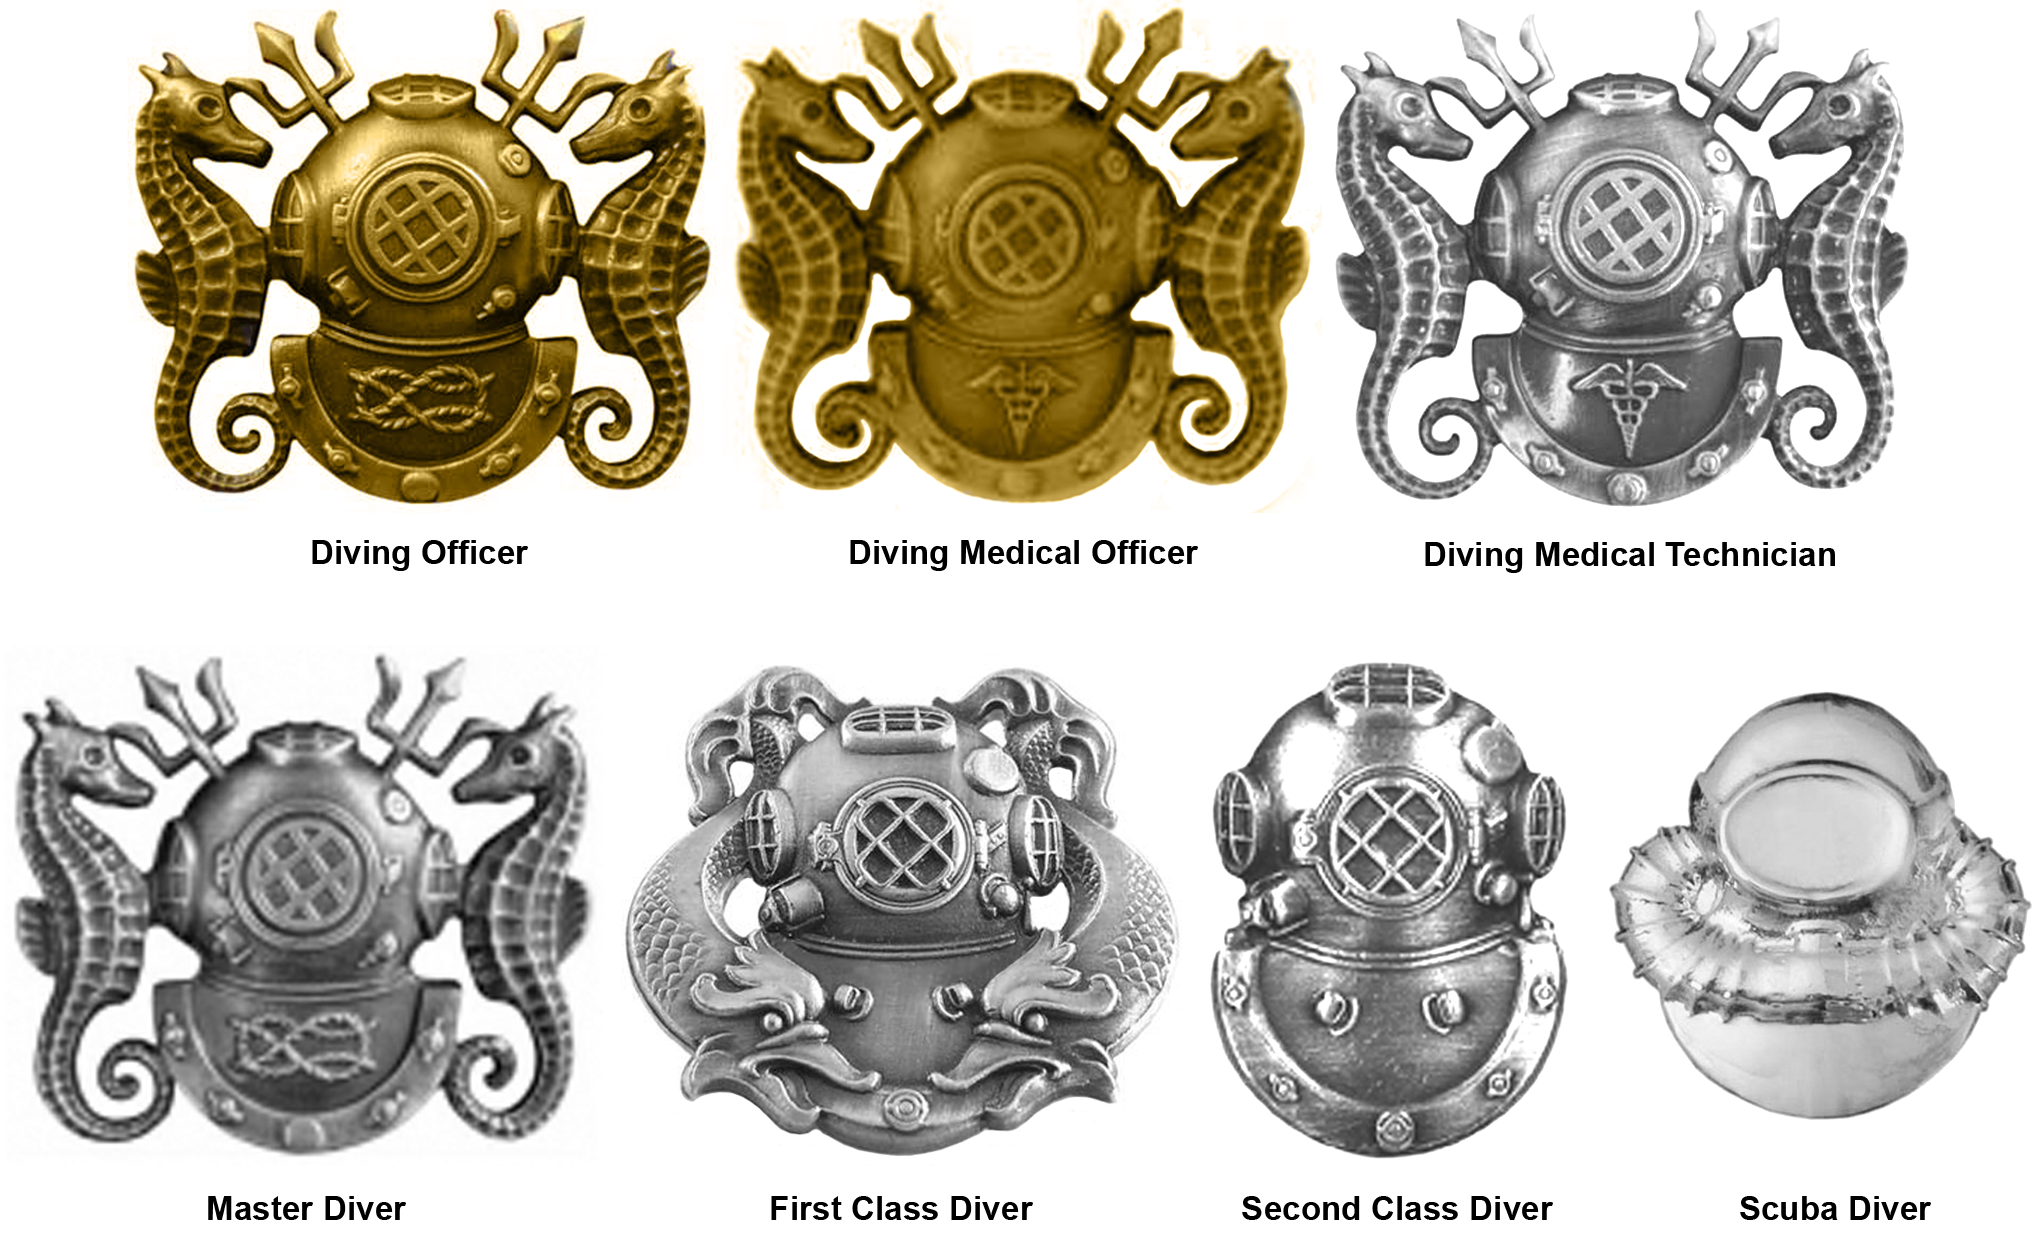 Navy Diver pins | Deep Sea | Diving, United states navy, Diver tattoo